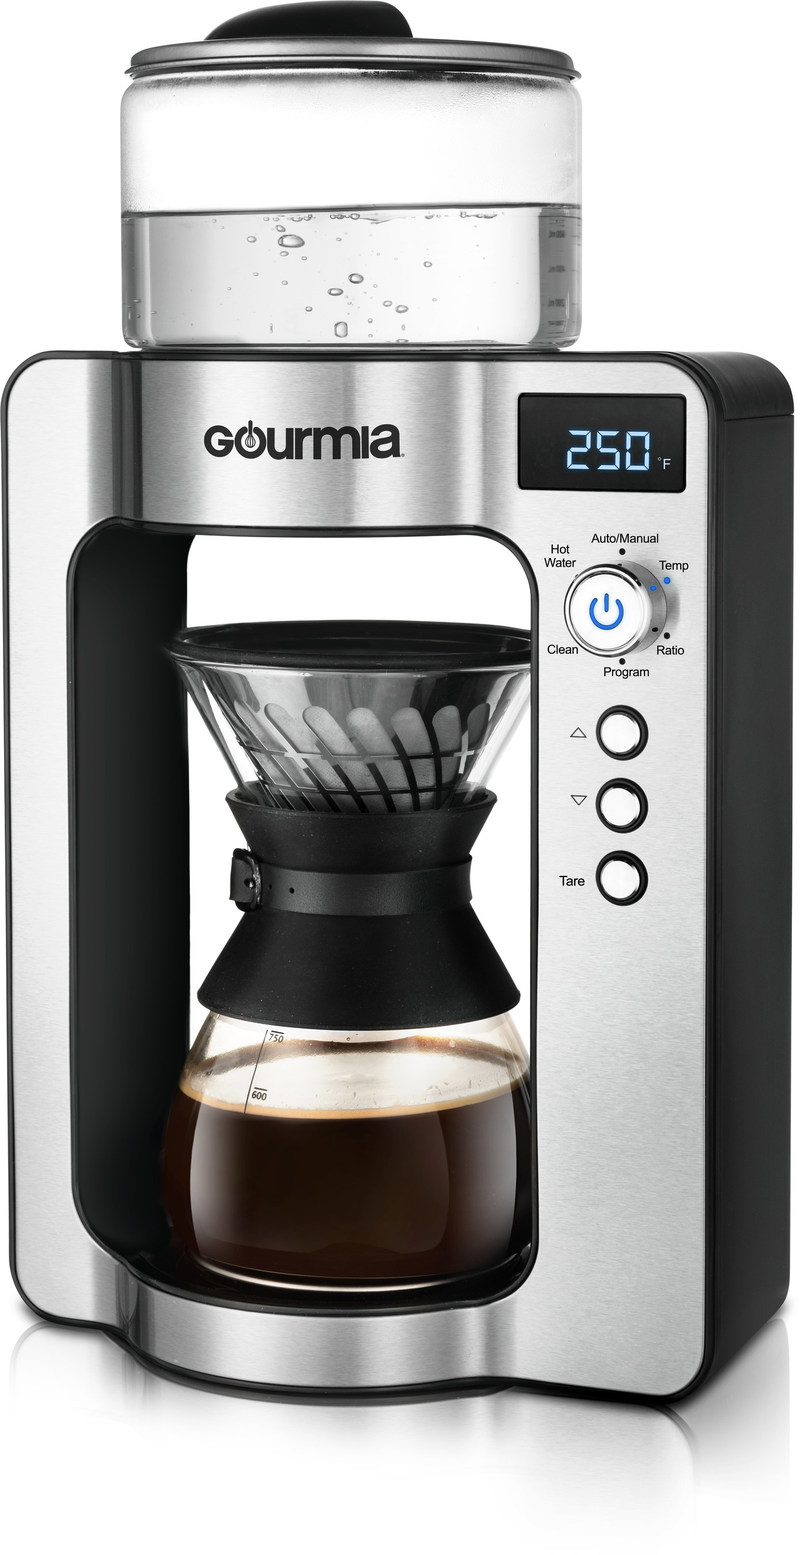 Gourmia's GCMW3375 is the world's first automatic pour-over coffee maker to feature Google Assistant, Amazon Alexa, and Artificial Intelligence (AI). It is also a finalist in the prestigious Red Dot Design Awards.